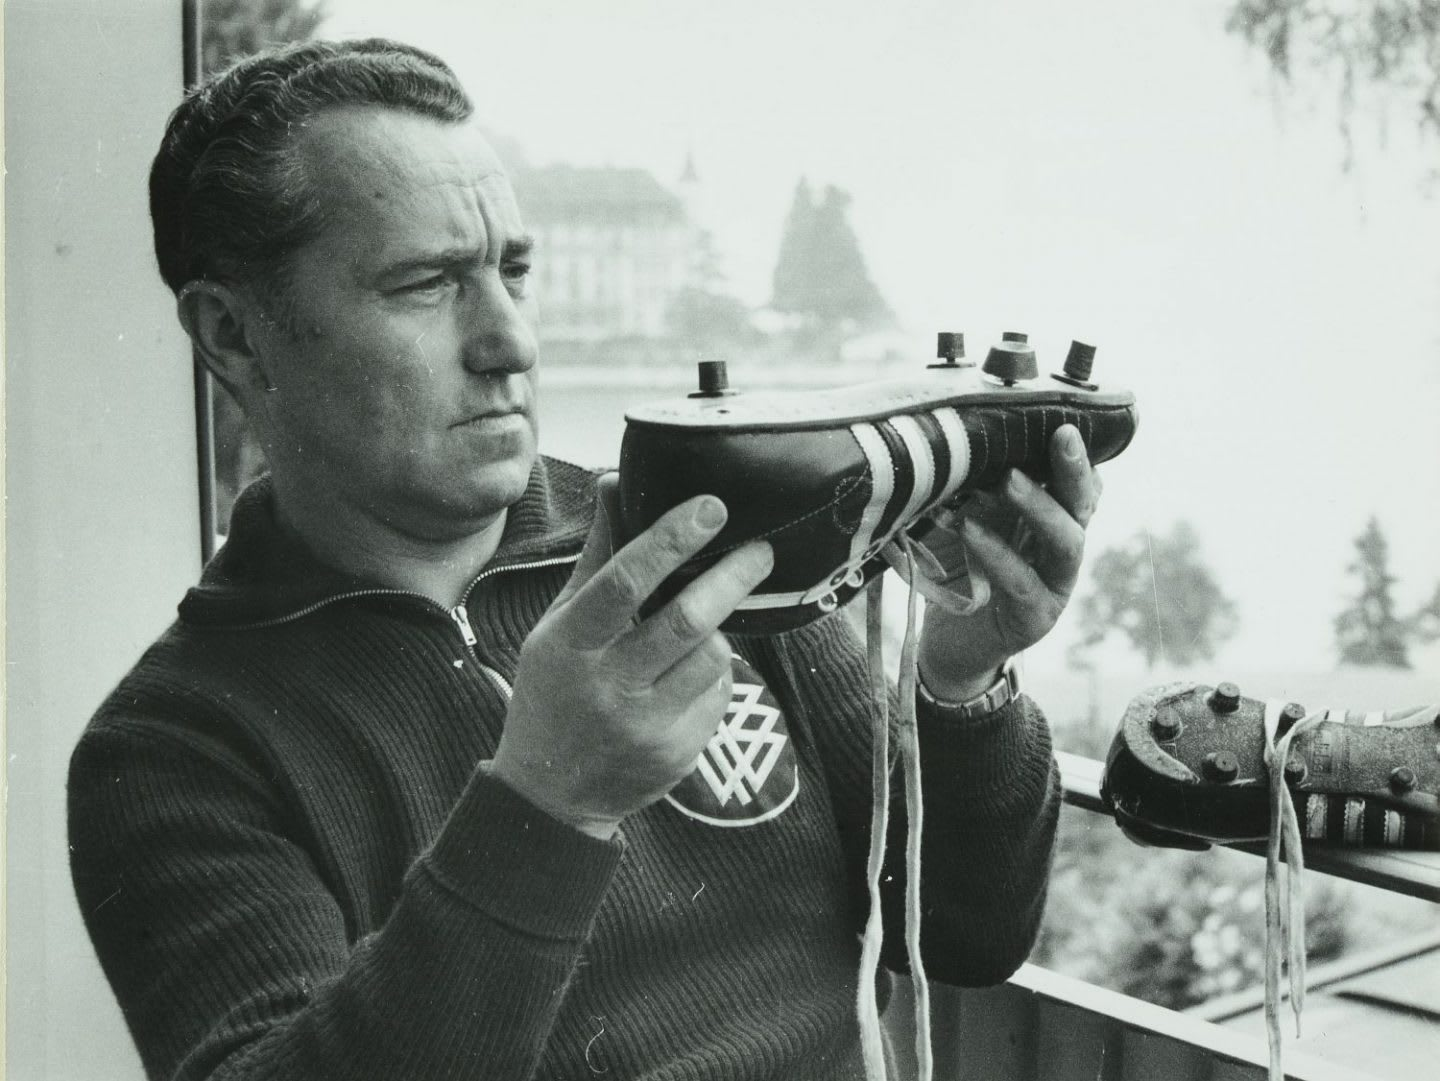 Man holding football shoe up close to his face for inspection, Adi, Adolf, Dassler, adidas, shoe, company, history, shoemaker